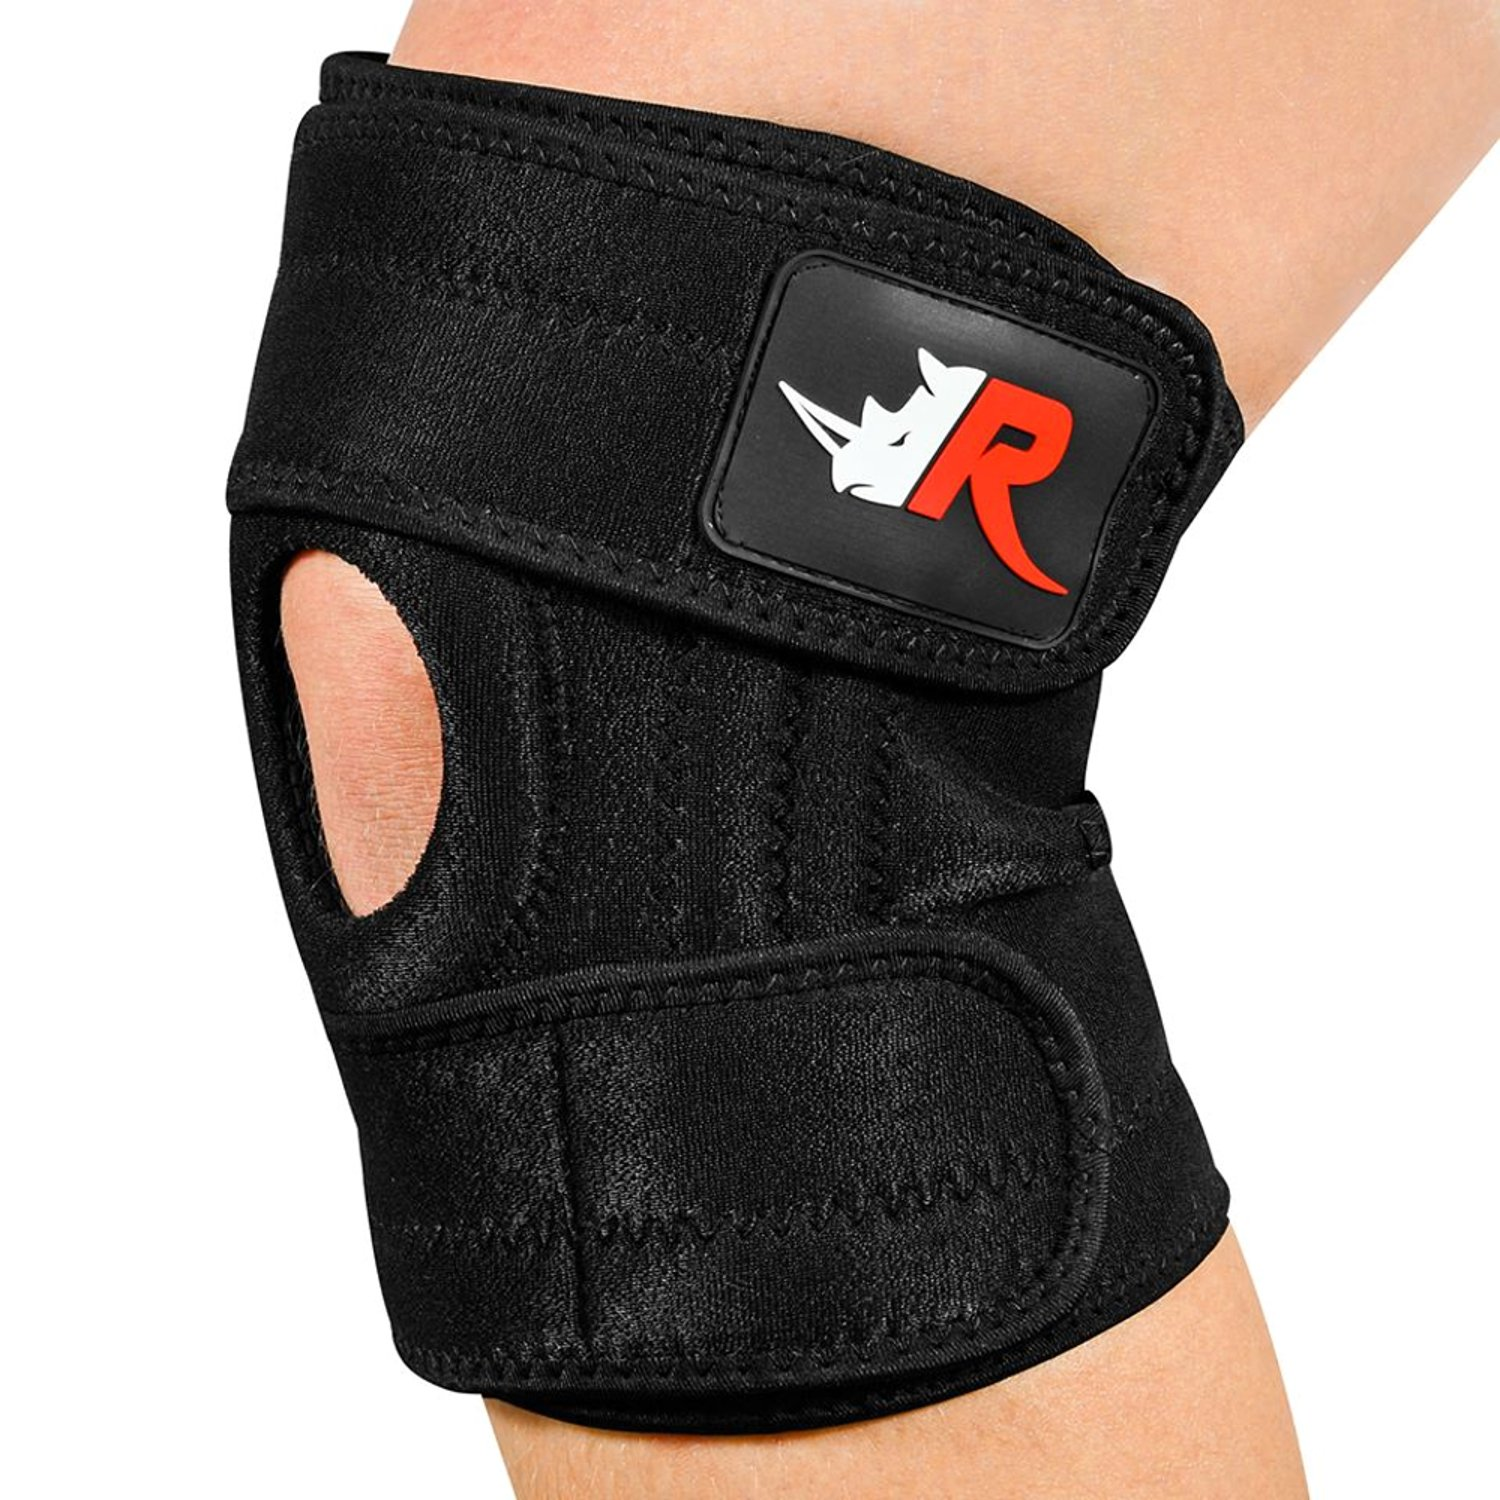 Large Knee Brace (w/Bag) - Adjustable Support for Arthritis, Meniscus Tear, ACL, Running, Sports | Non-Slip Patella Protector Relieves Pain